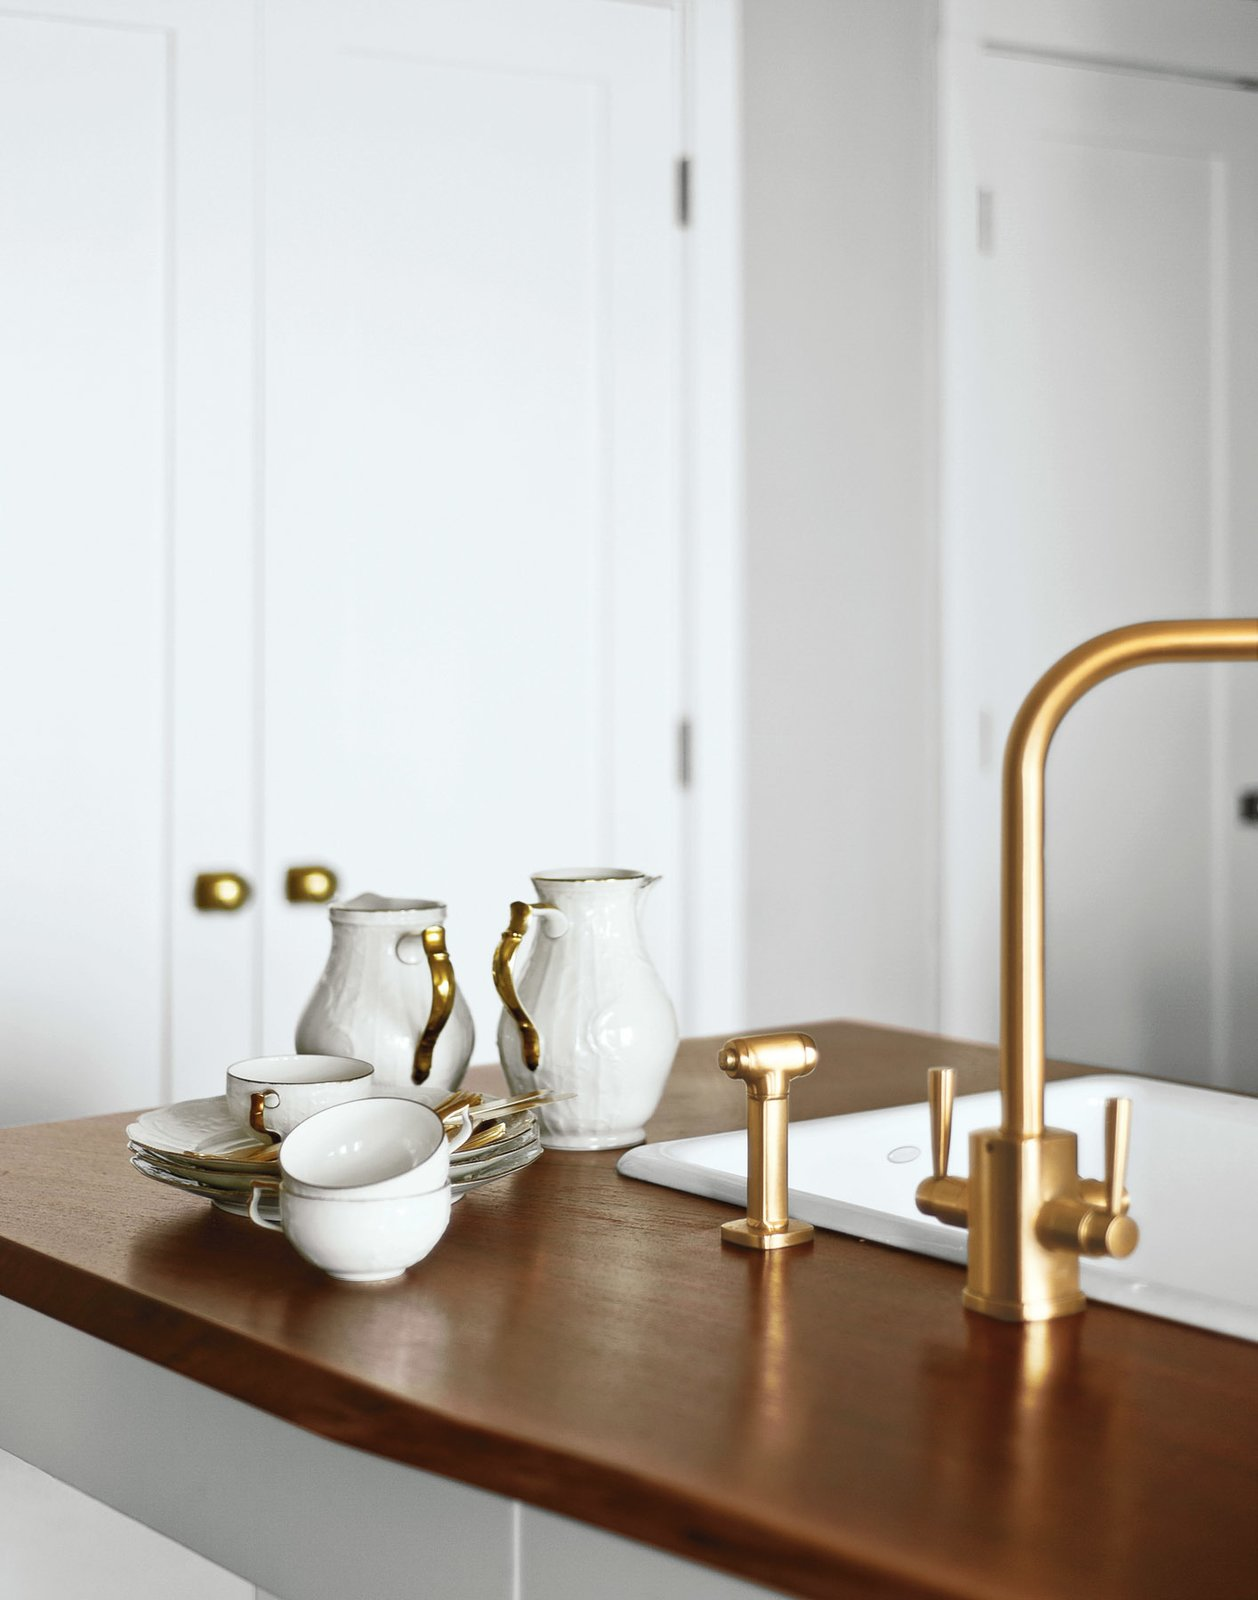 A Rohl faucet was stripped and replated in brushed brass. The modern fixtures prove a lovely contrast to the American walnut countertops and original Rosenthal dishware.  Photo 10 of 12 in A Minimal Yet Mighty Brooklyn Apartment